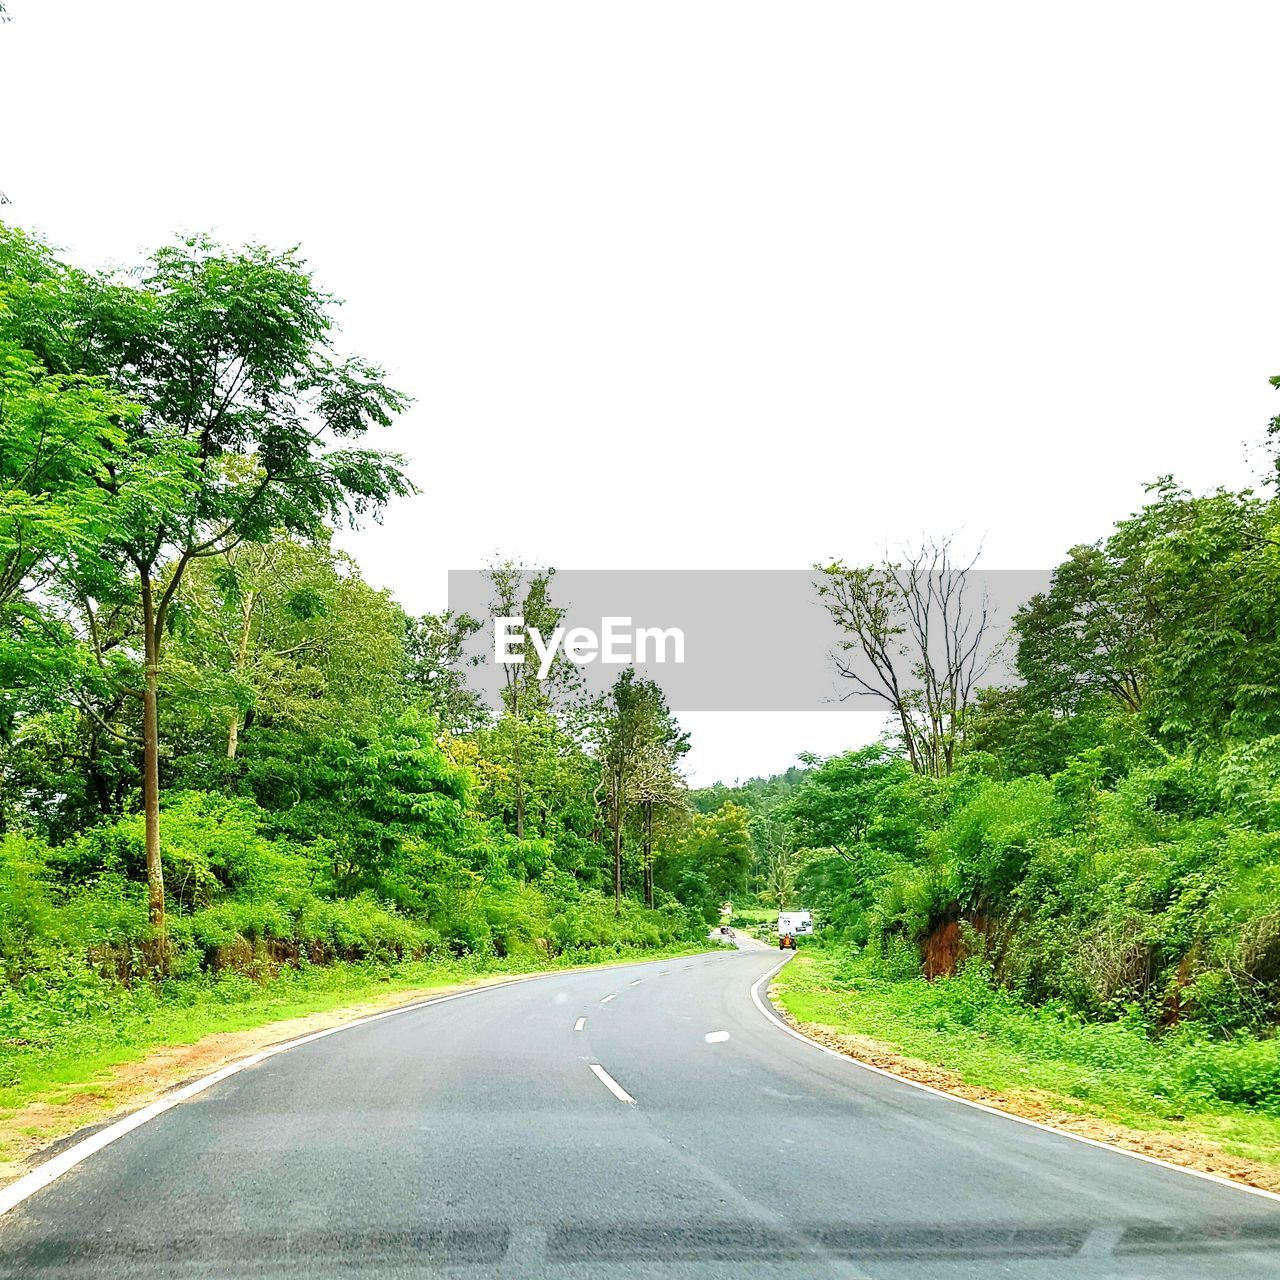 tree, road, the way forward, transportation, green color, growth, day, nature, clear sky, tranquil scene, tranquility, no people, outdoors, scenics, beauty in nature, landscape, sky, winding road, grass